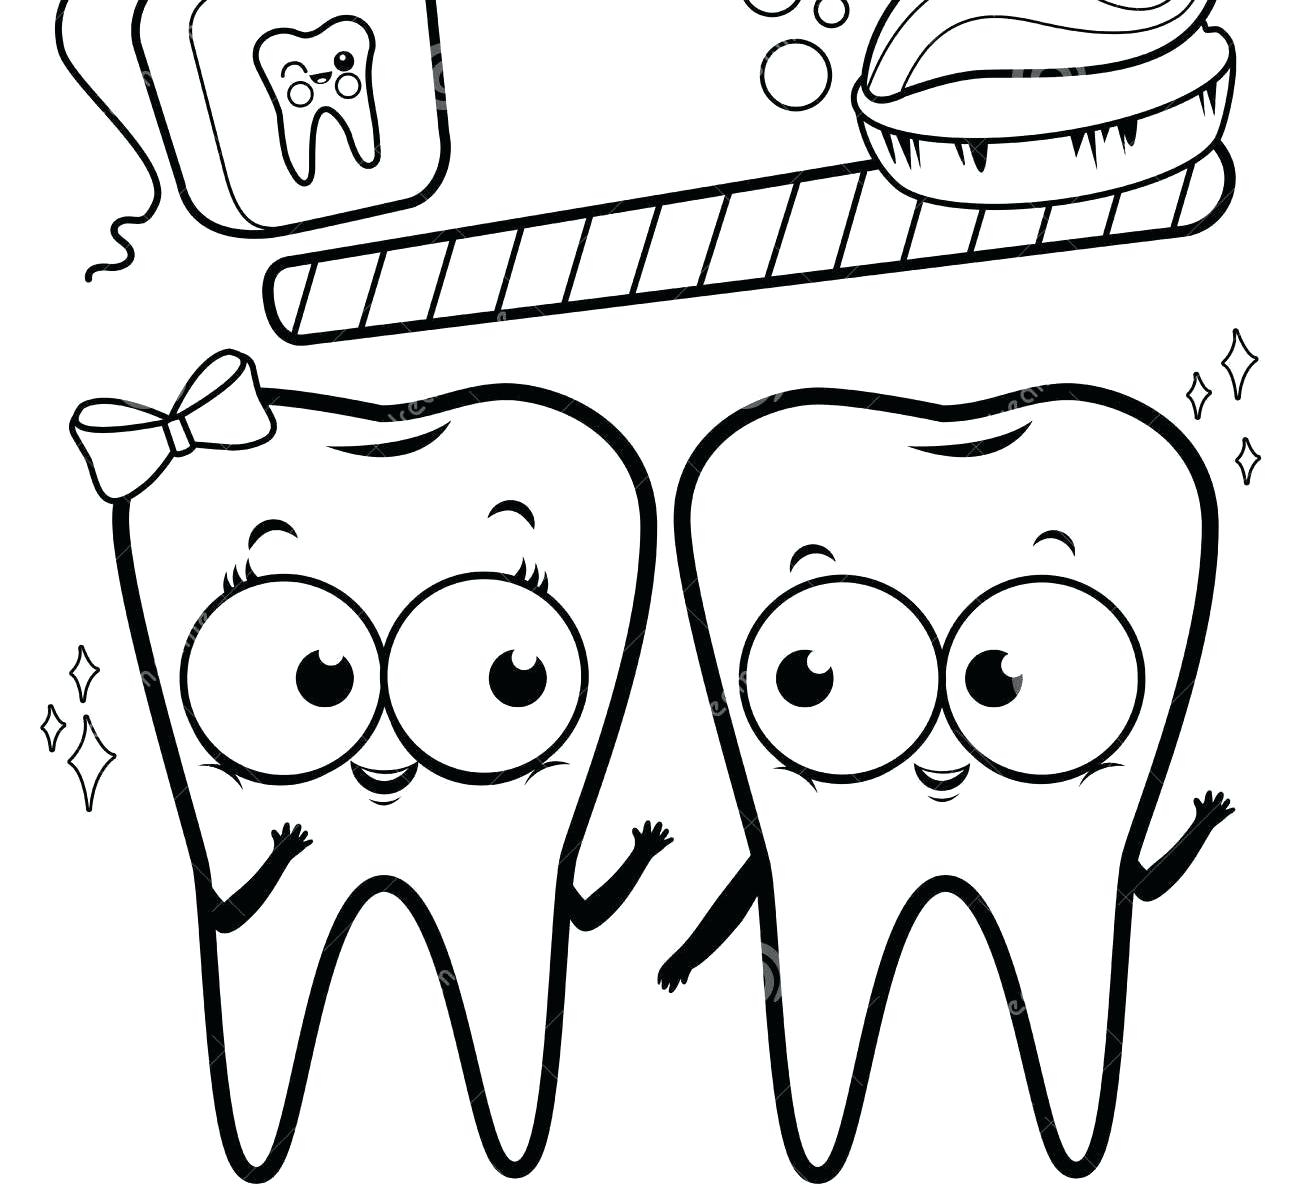 Dental Coloring Pages Printable tooth Kids Teeth Page and Color Printable Of Coloring Pages tooth Coloring Pages Unique Happy Brush Dental Page Gallery